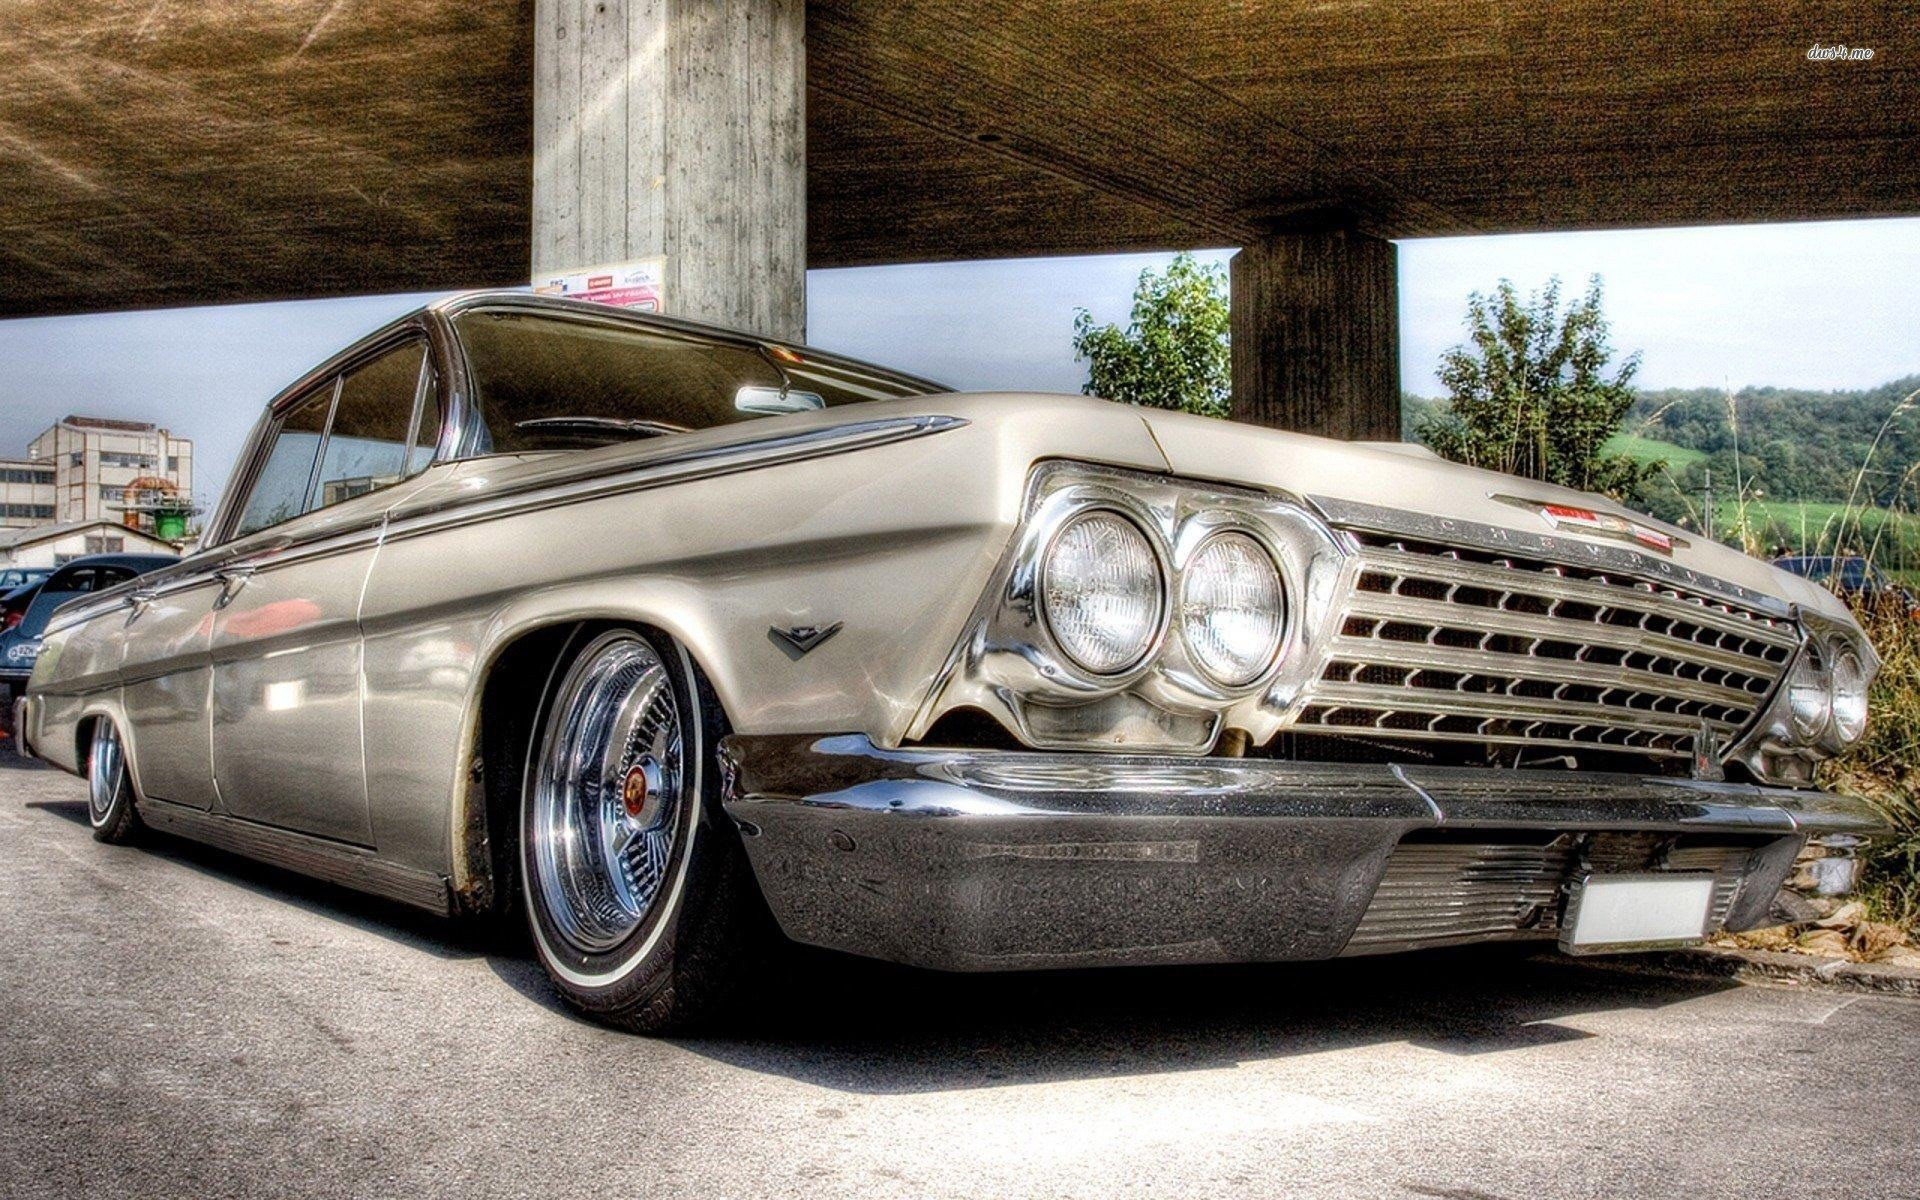 1920x1200 Lowrider Chevrolet Impala Ss Wallpaper Car Wallpapers 18676 1967